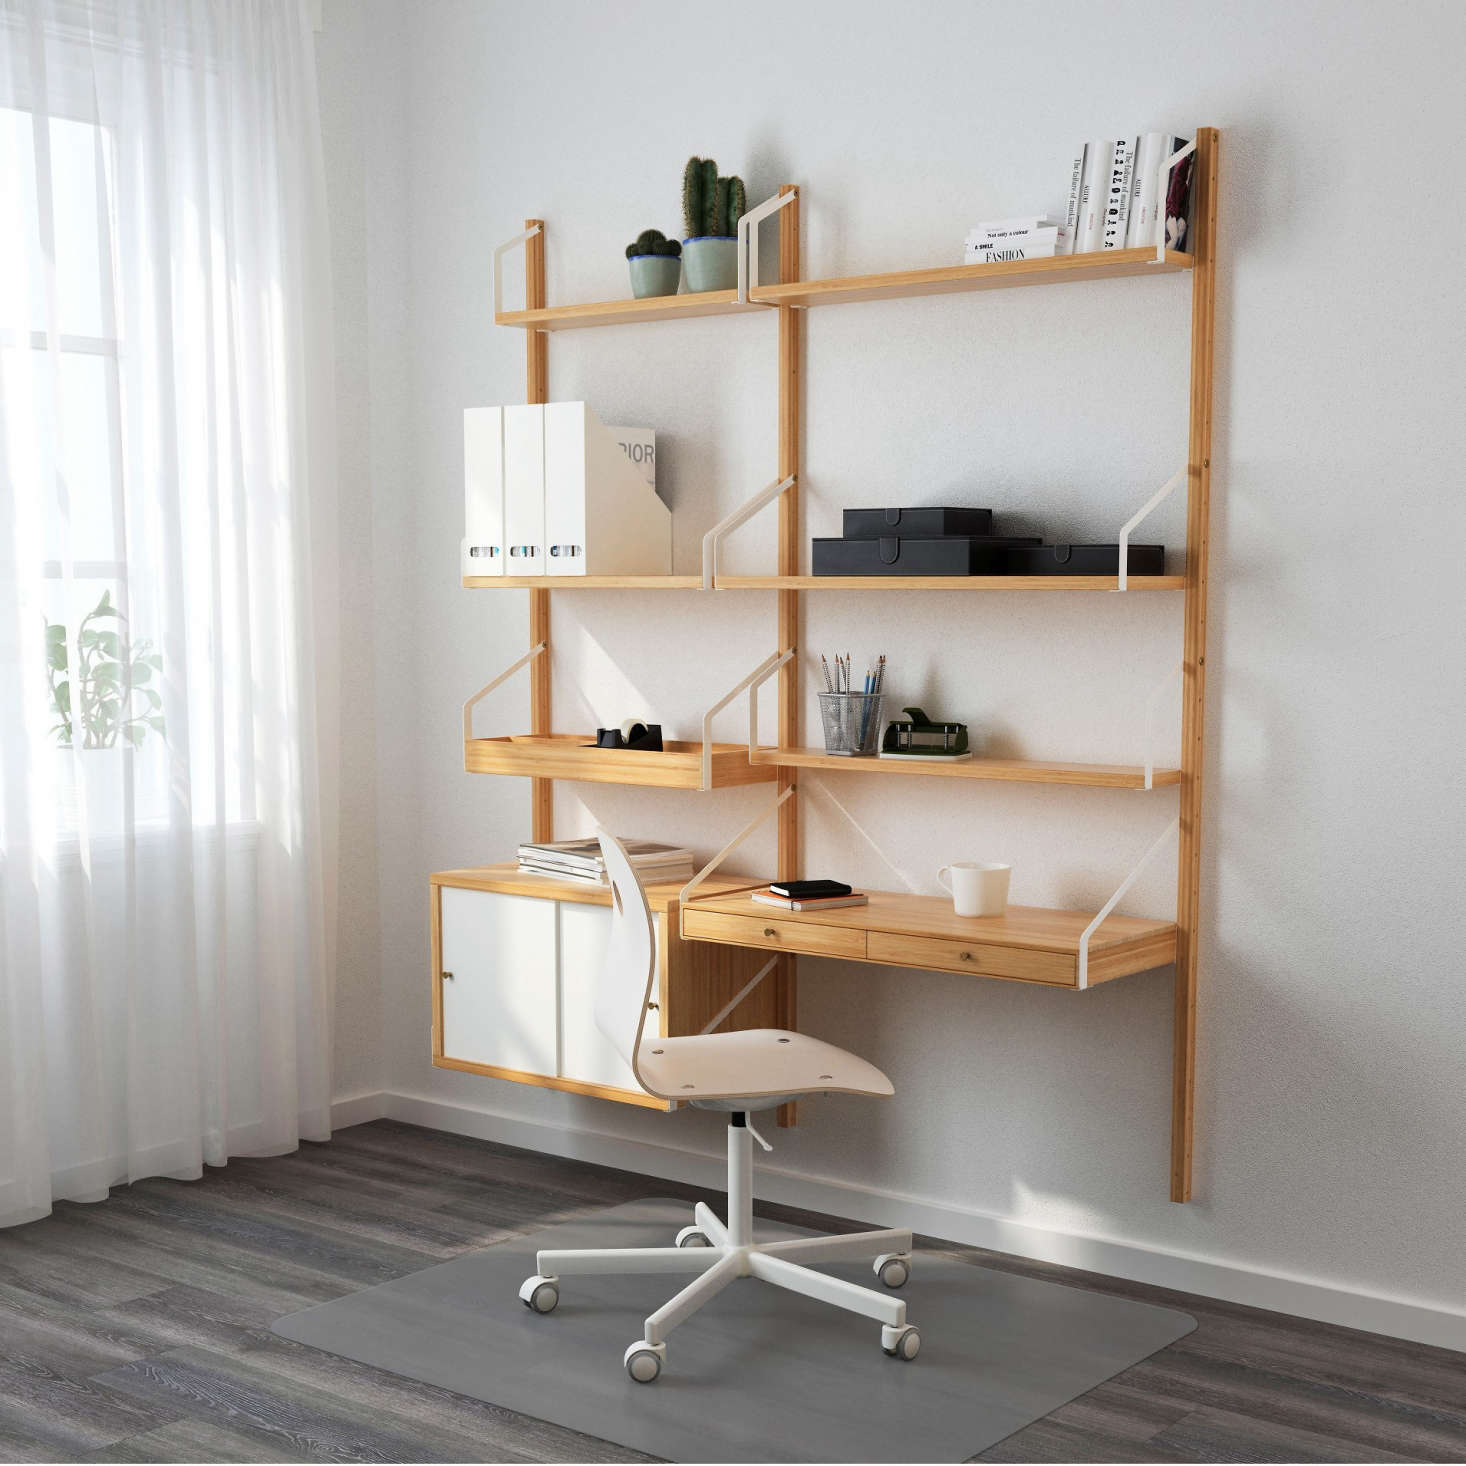 Ikea System High Low Wall Mounted Midcentury Modular Shelving Remodelista